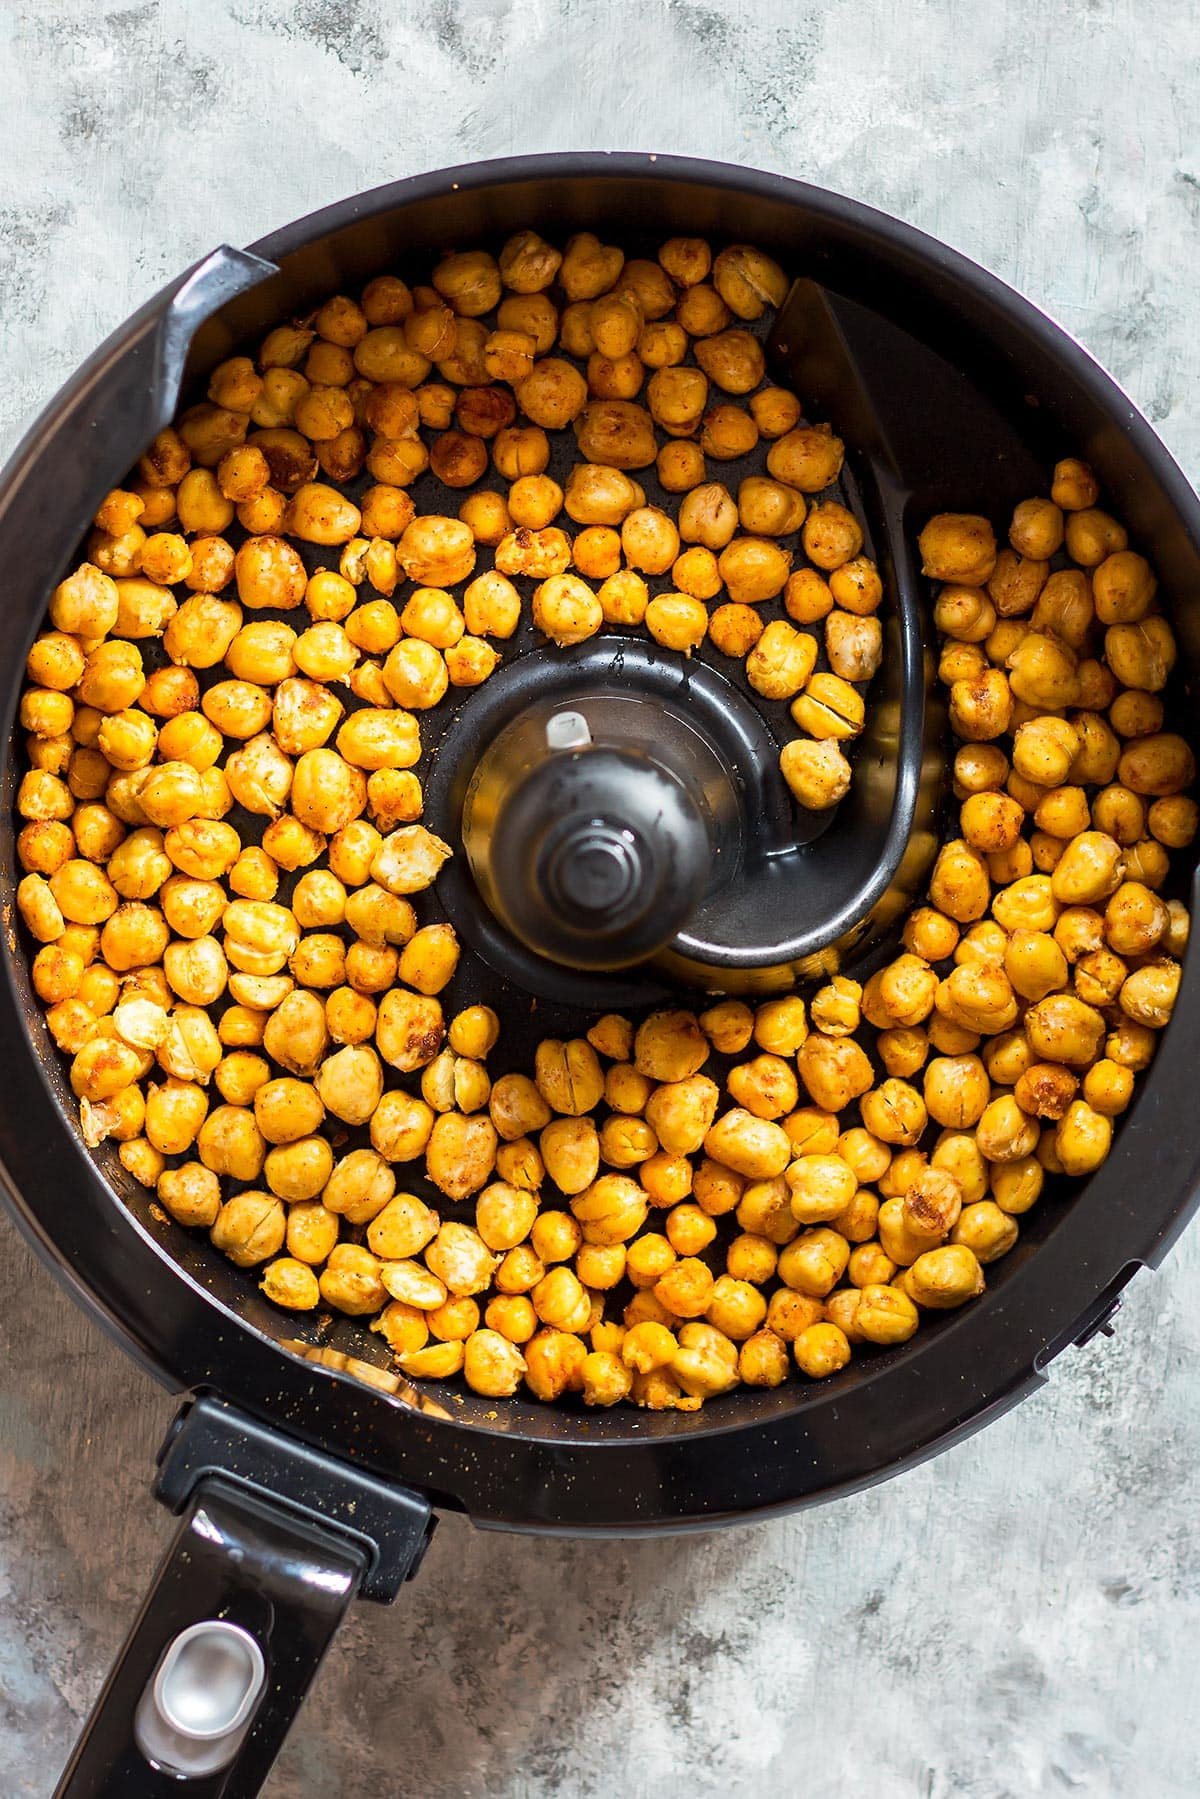 Roasted Chickpeas in Actifry